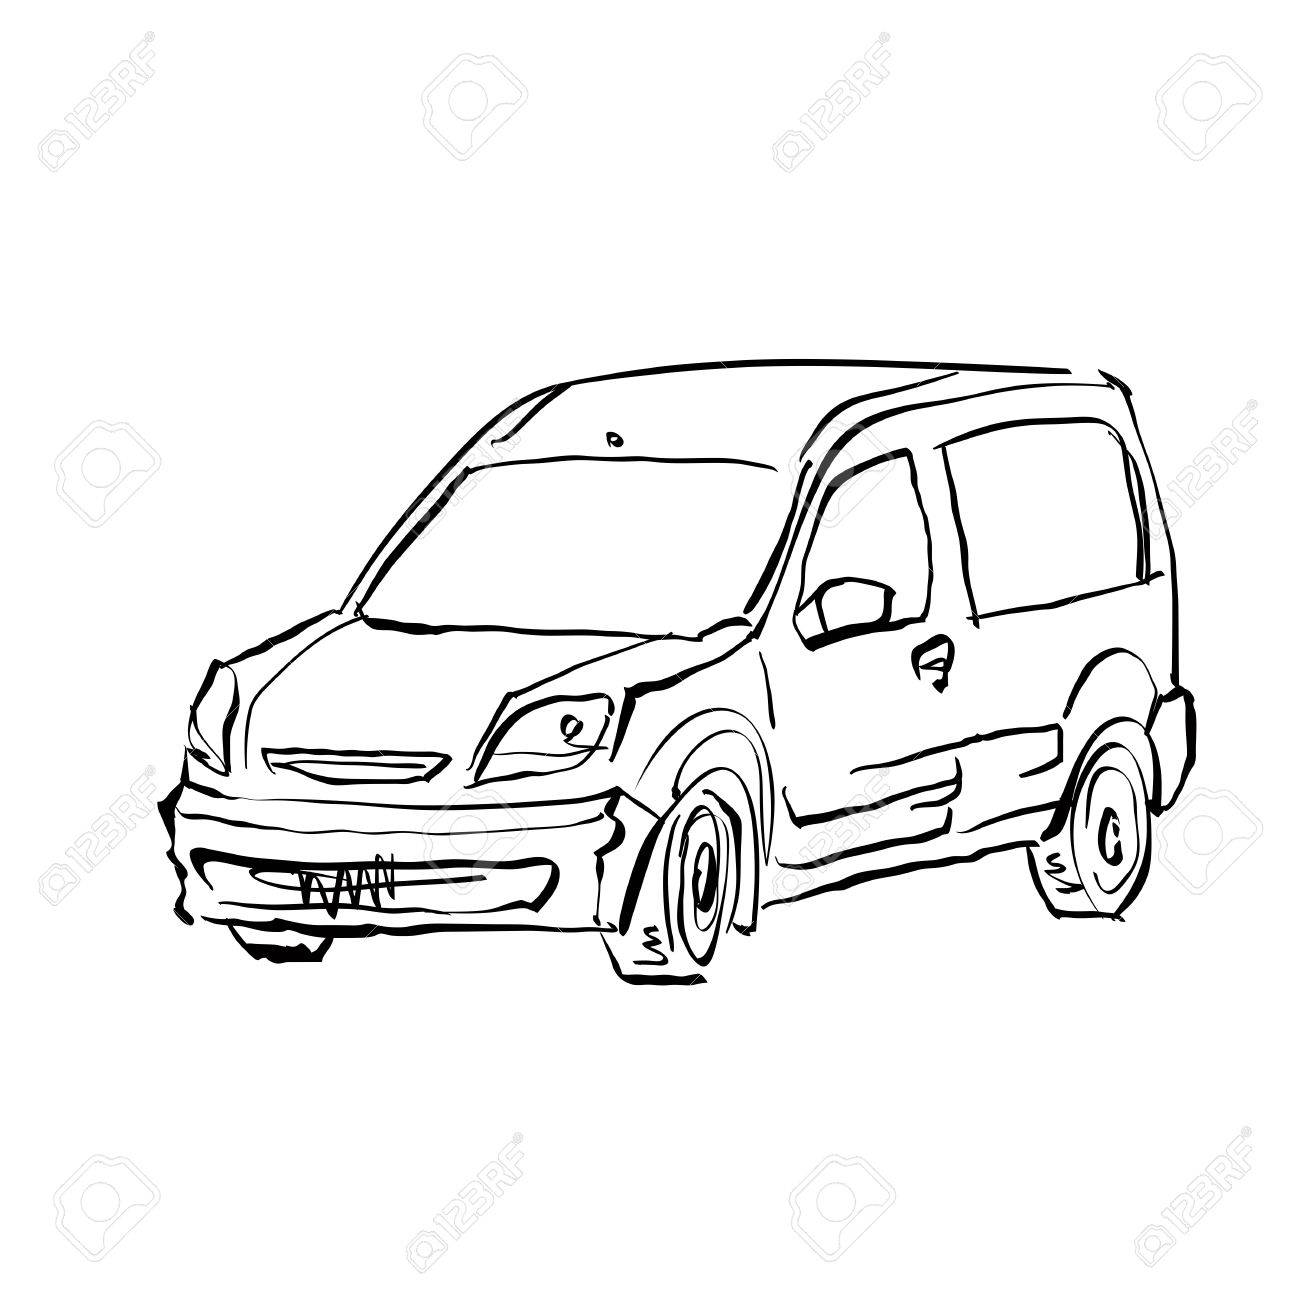 1300x1300 black and white hand drawn car on white background illustration